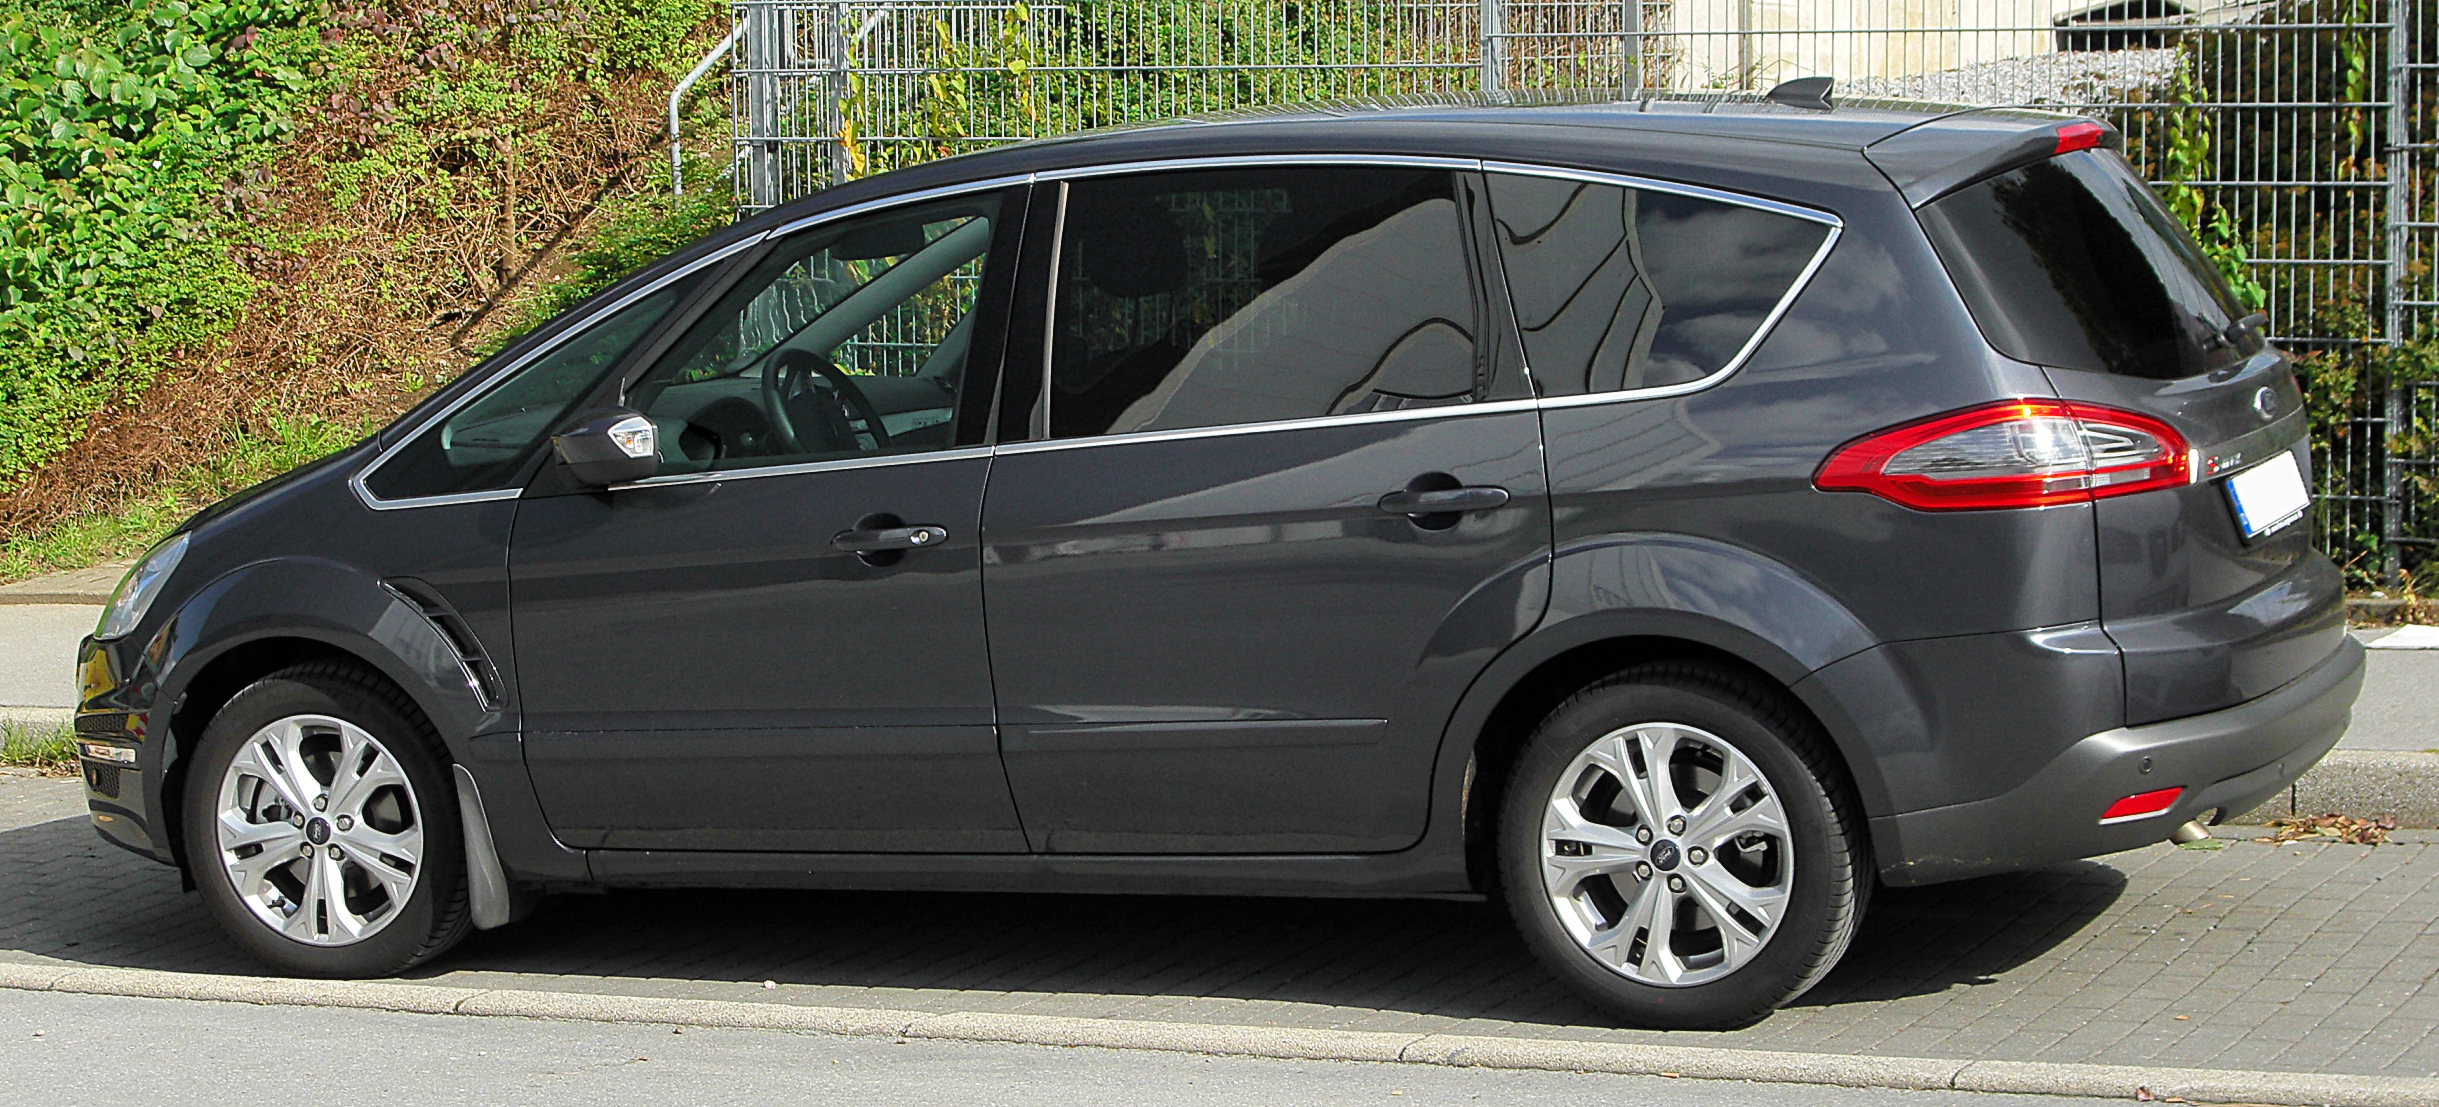 ford s-max pics #7